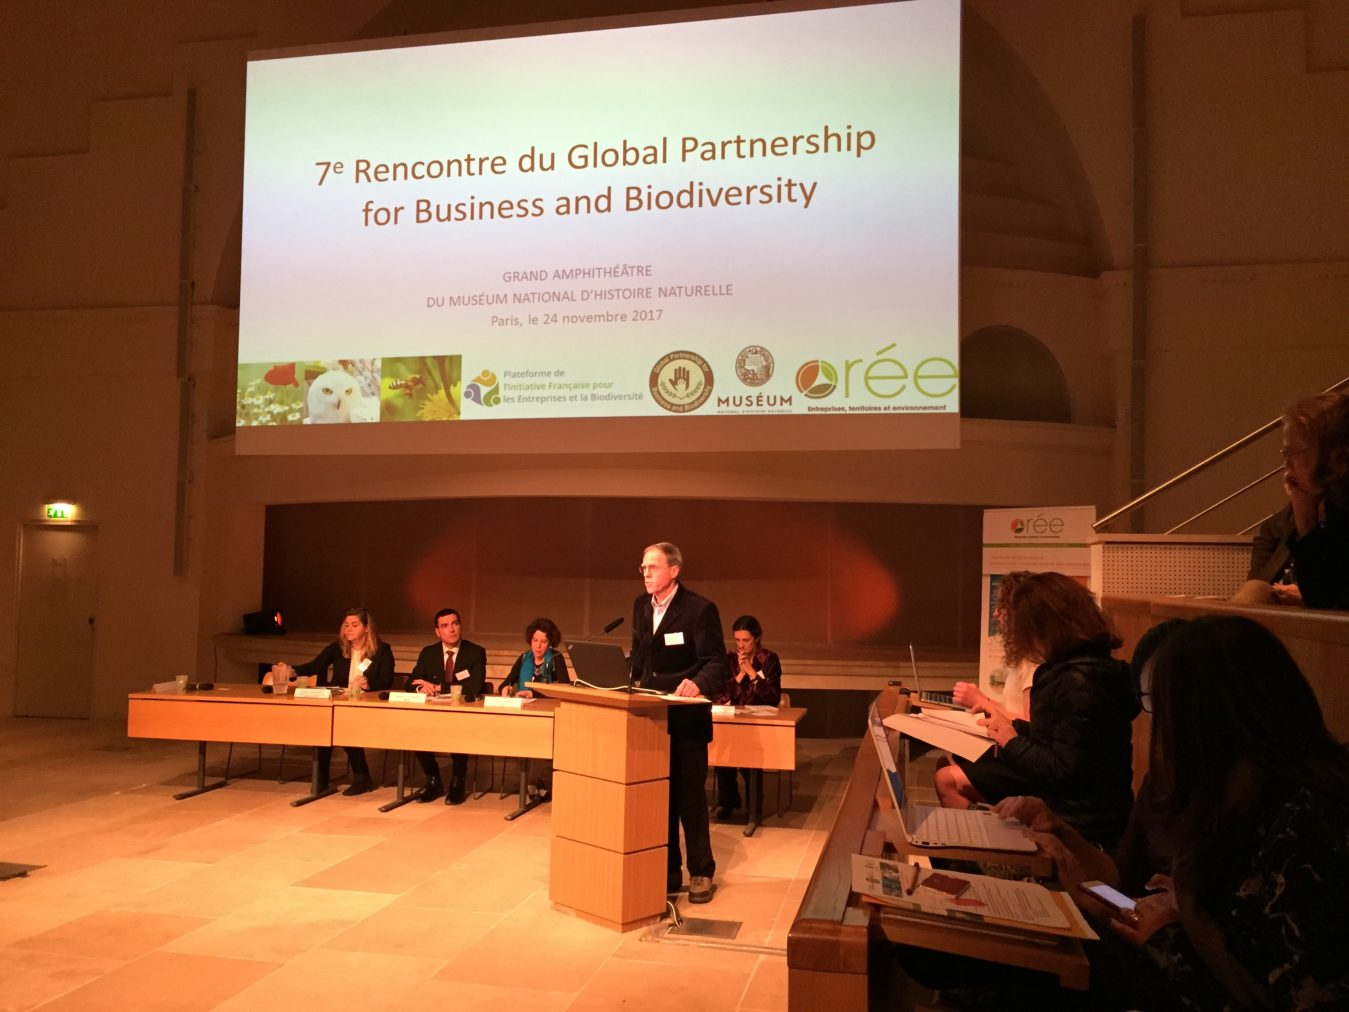 La Biodiversity Partnership Mesoamérica asume la presidencia de Global Partnership for Business and Biodiversity